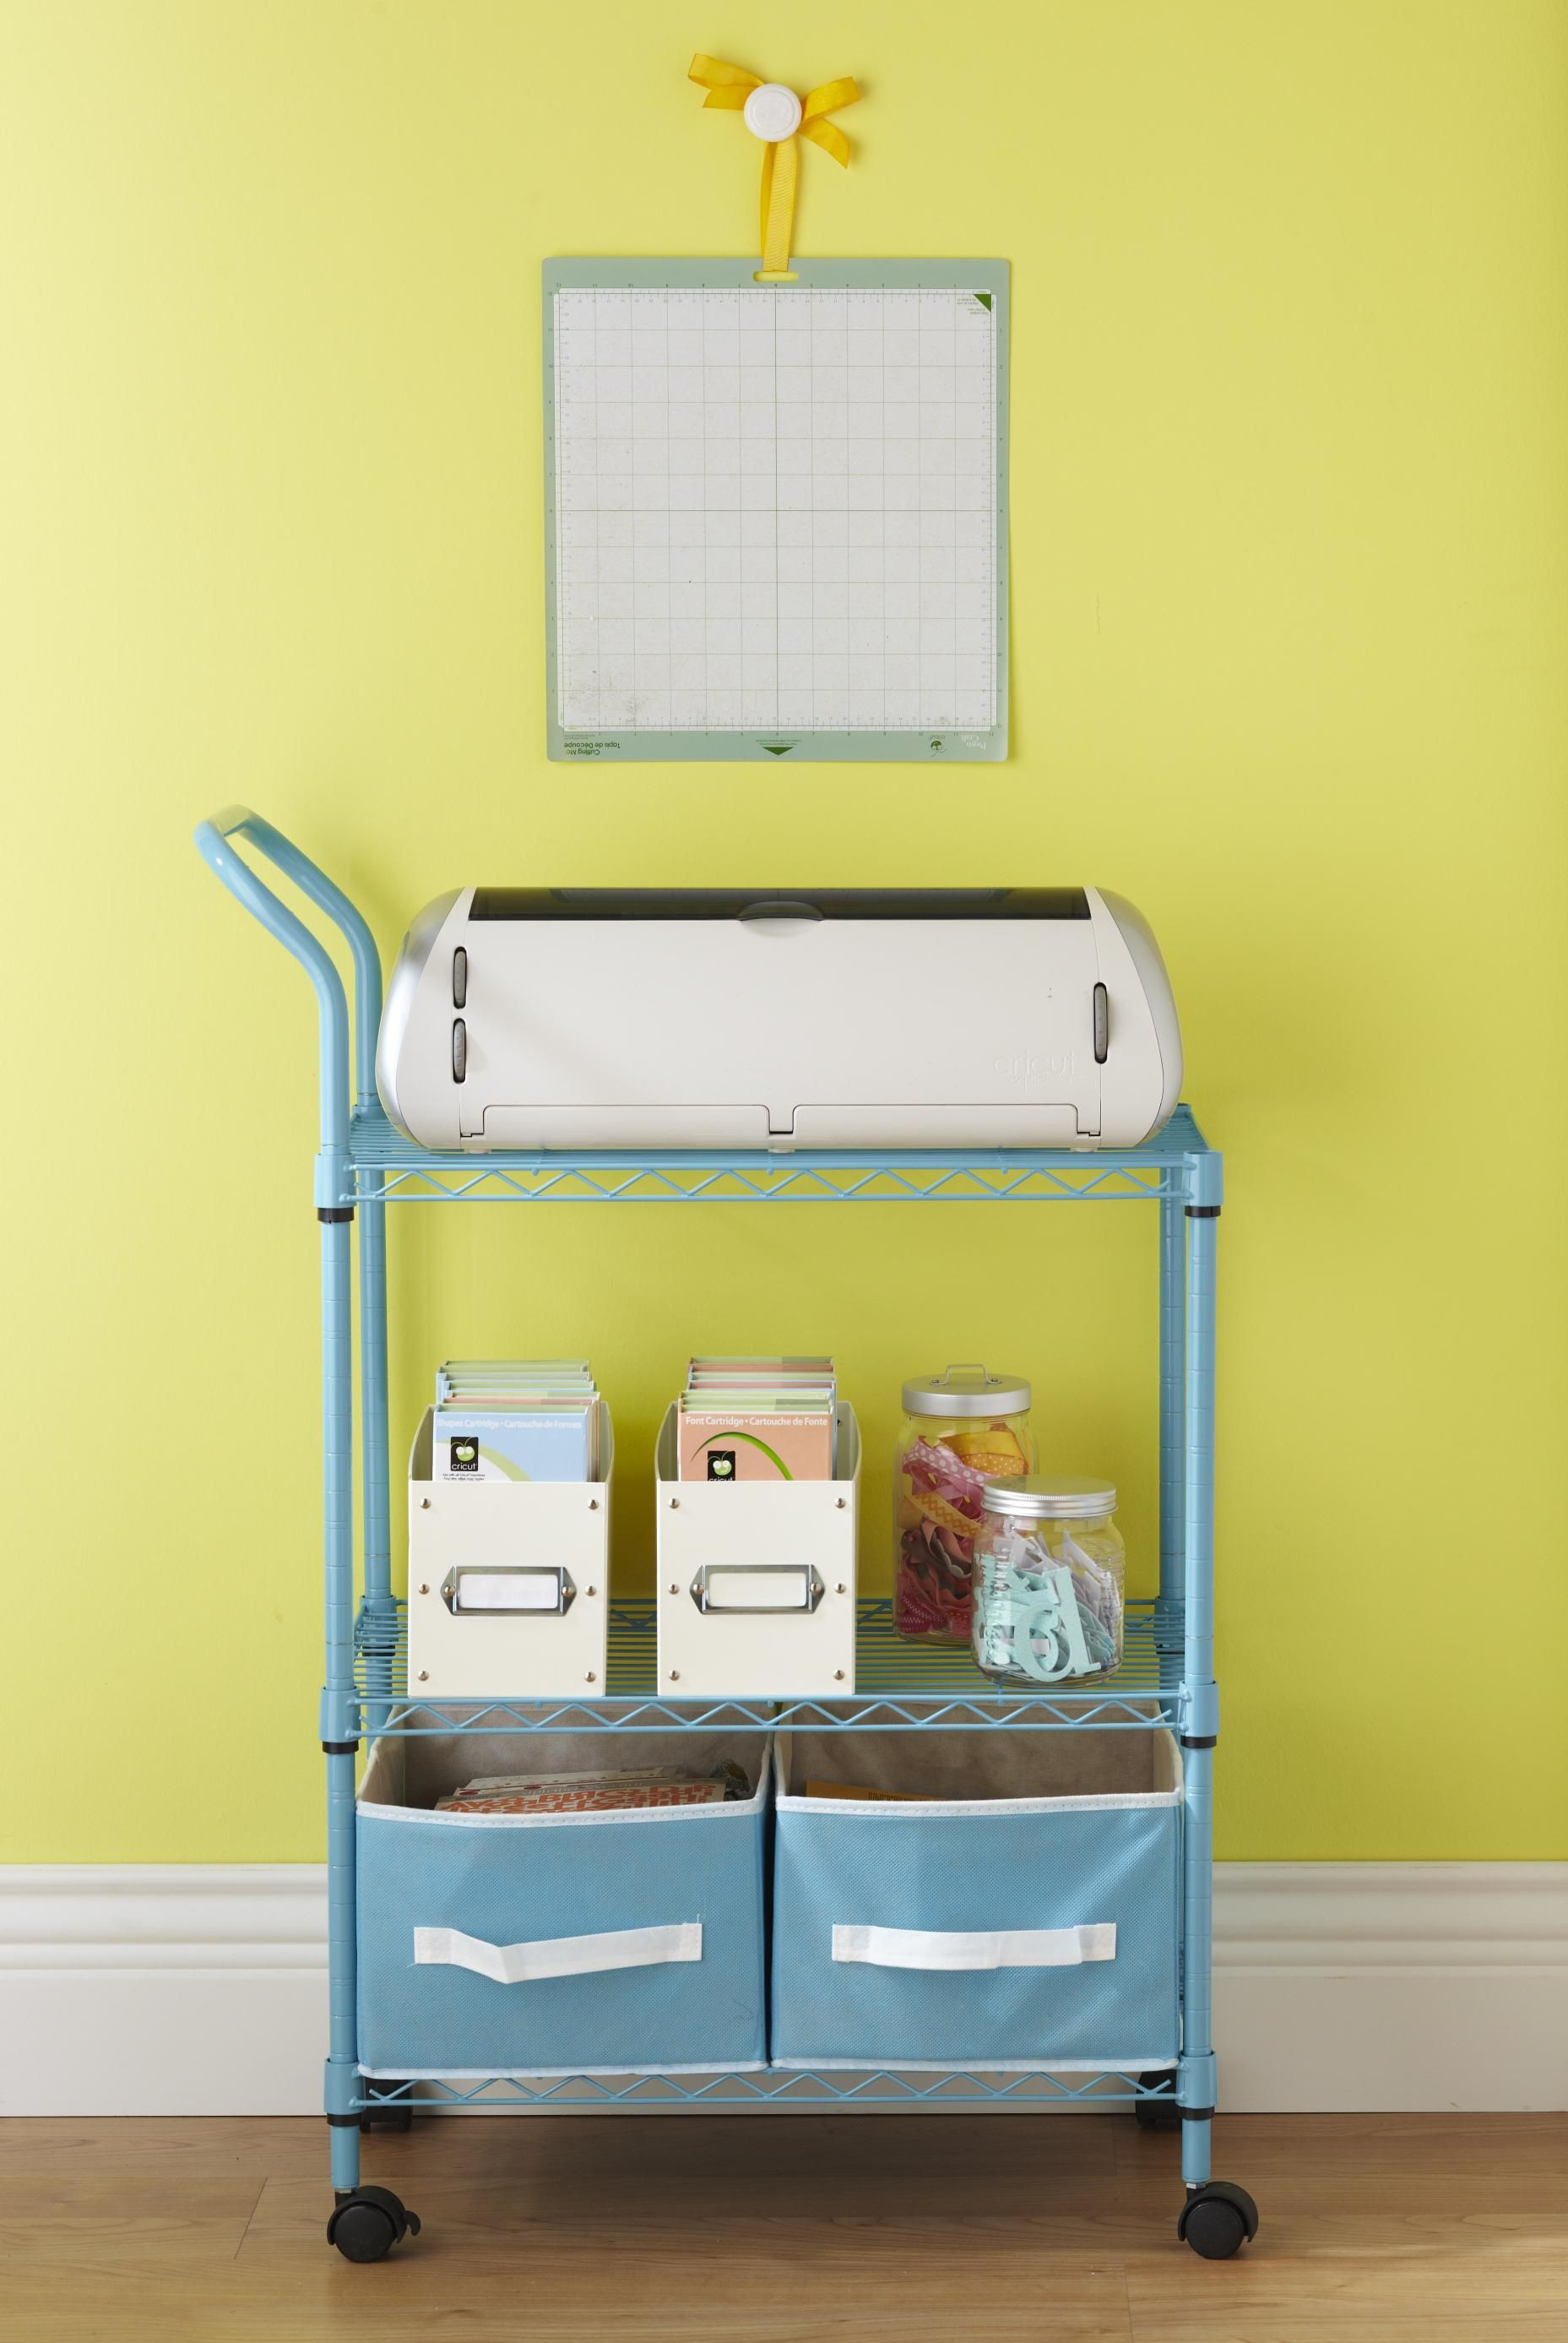 Used An Ikea Utility Cart With Drawer And Hanging Pails Placed Milk Crate  On Bottom For Paper Scraps Now I Just Need A Cricut